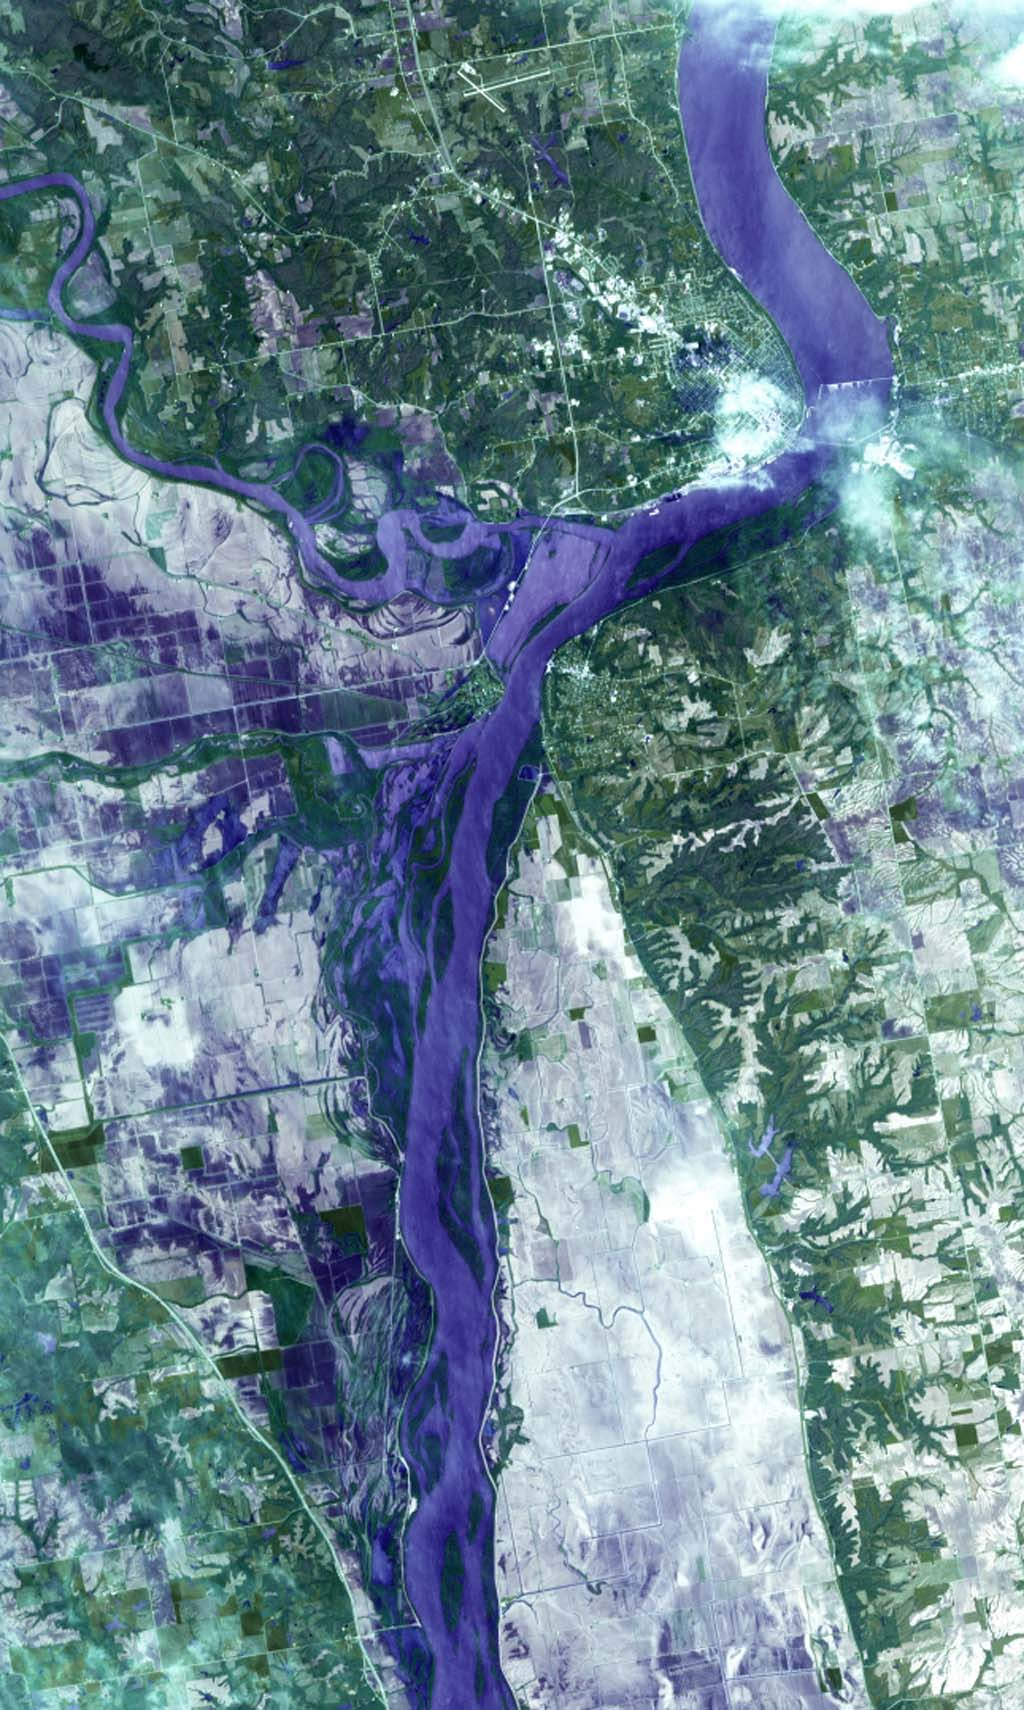 NASA's Terra spacecraft acquired this image on April 30, 2011, showing flooding along the Mississippi River at its junction with the Des Moines River near Keokuk, Iowa.